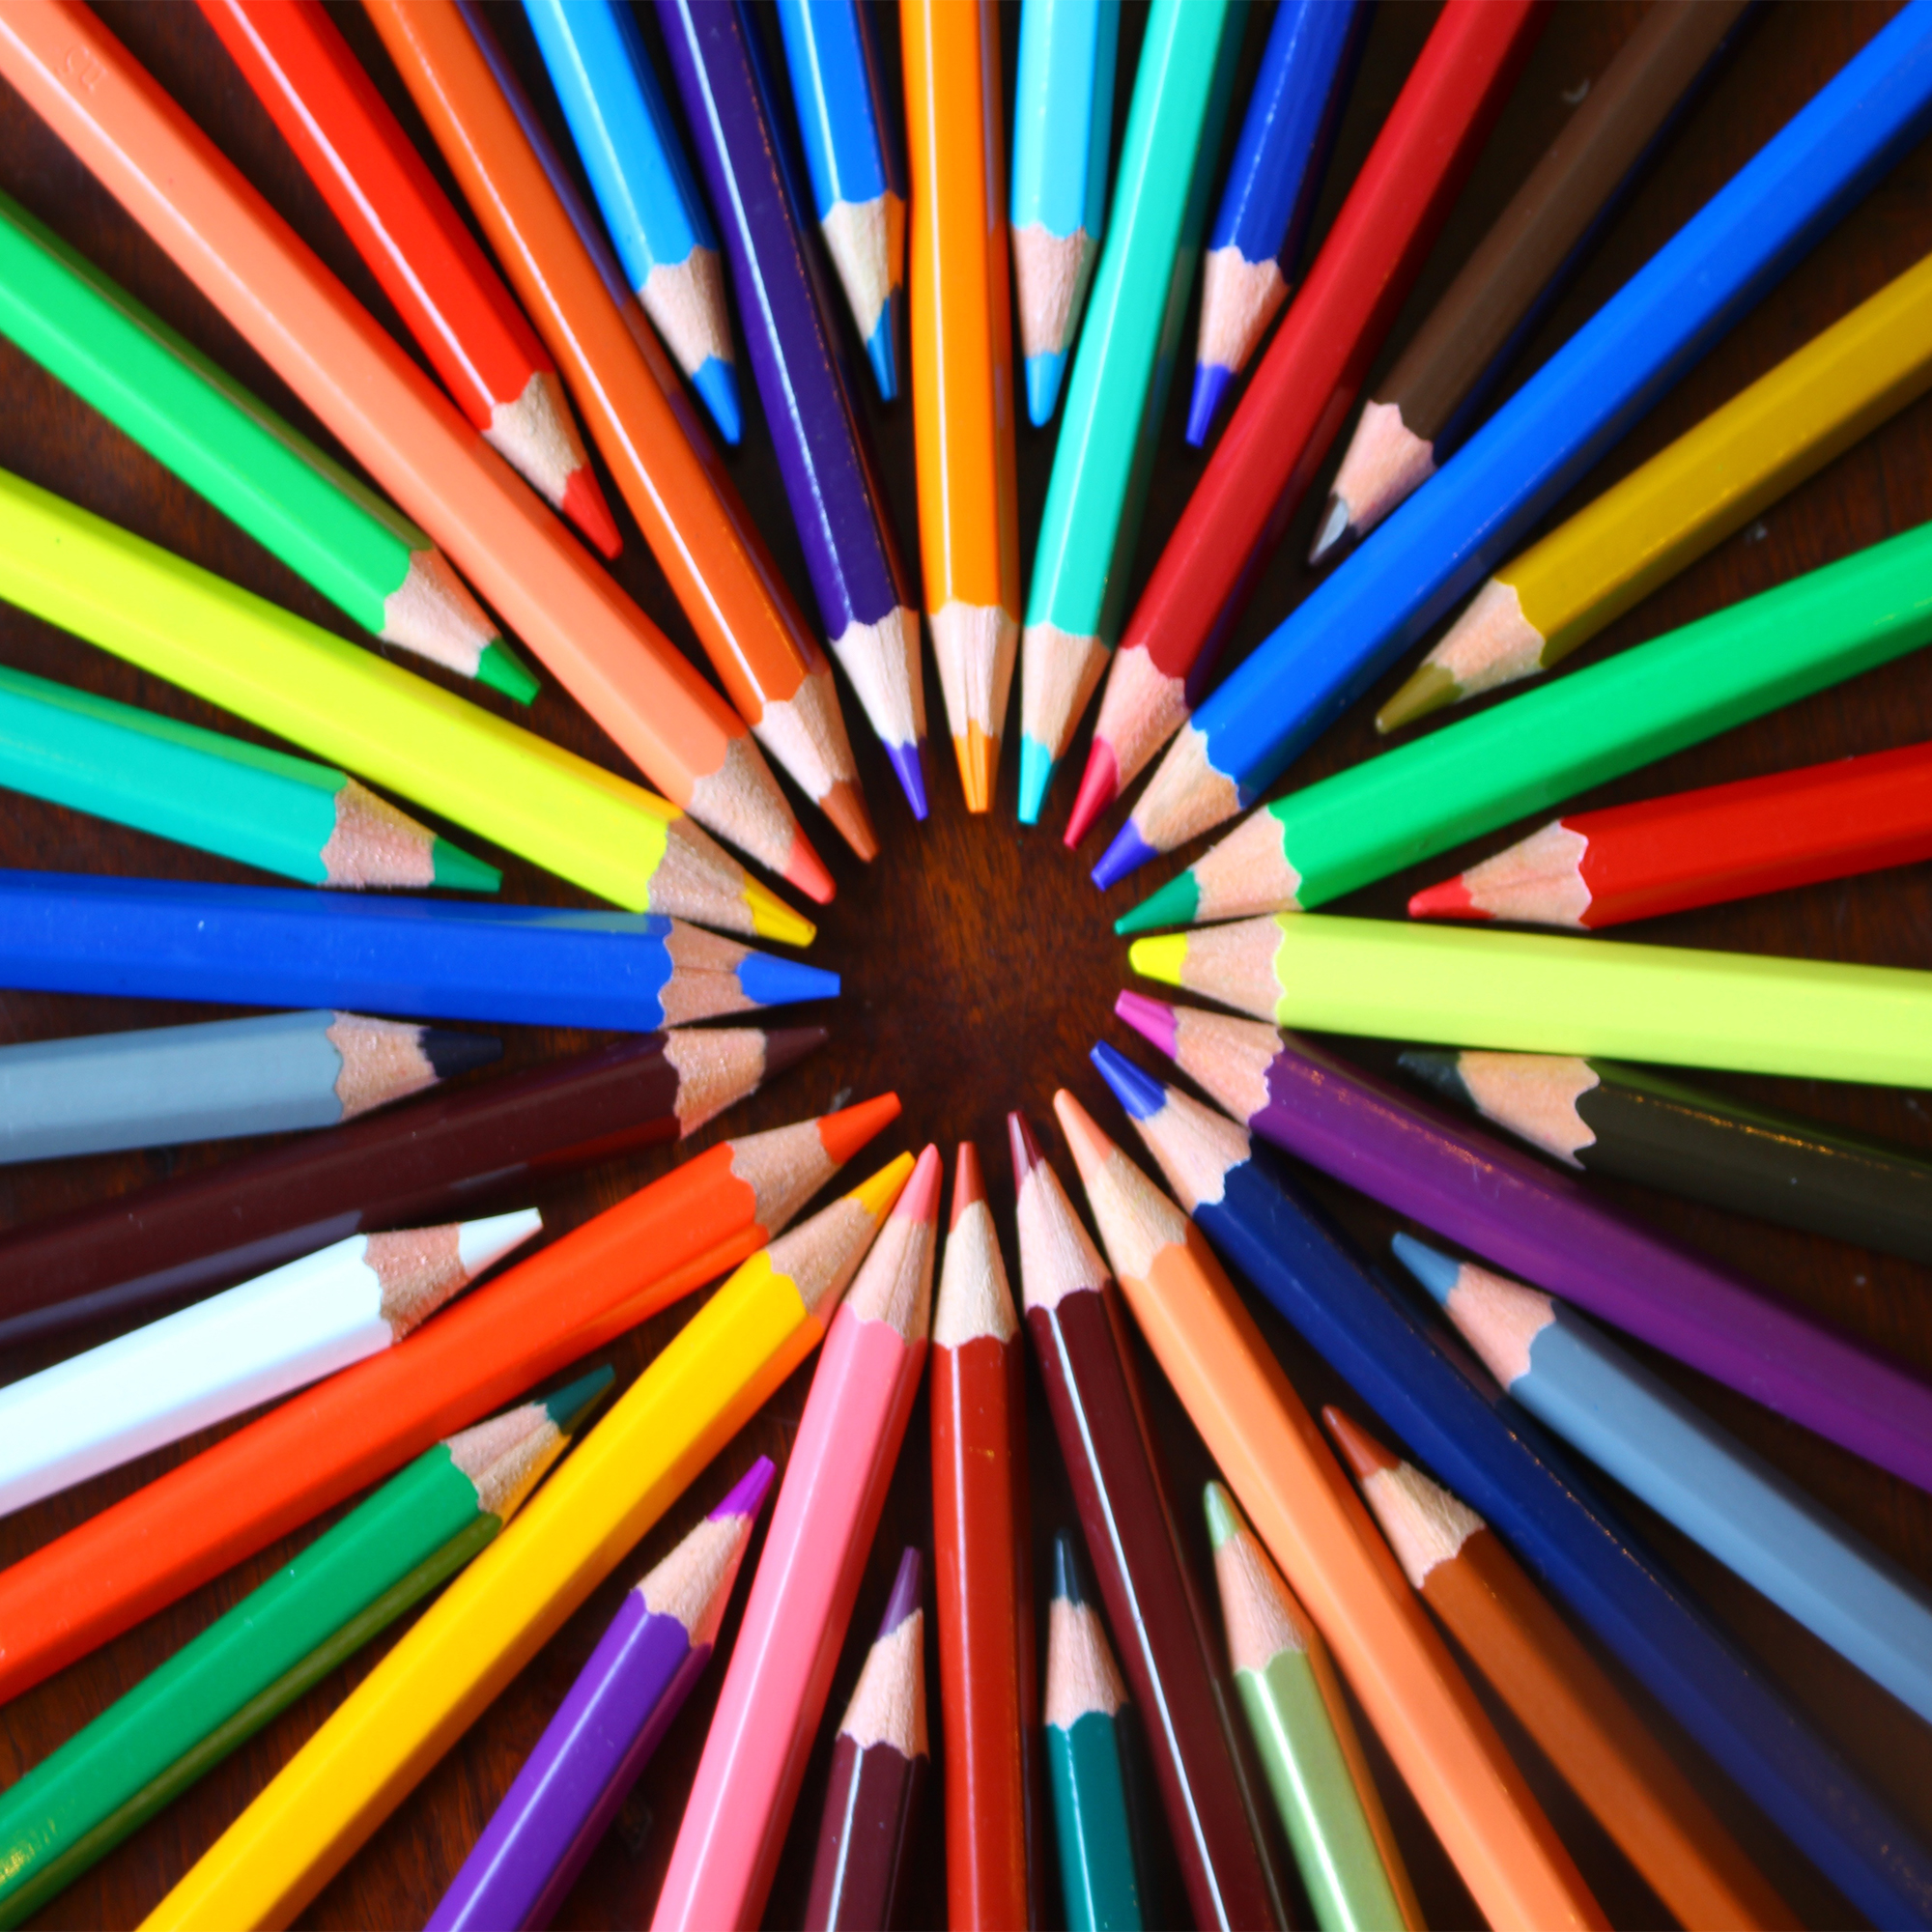 coloured pencils in a circle fan shape on a wood background